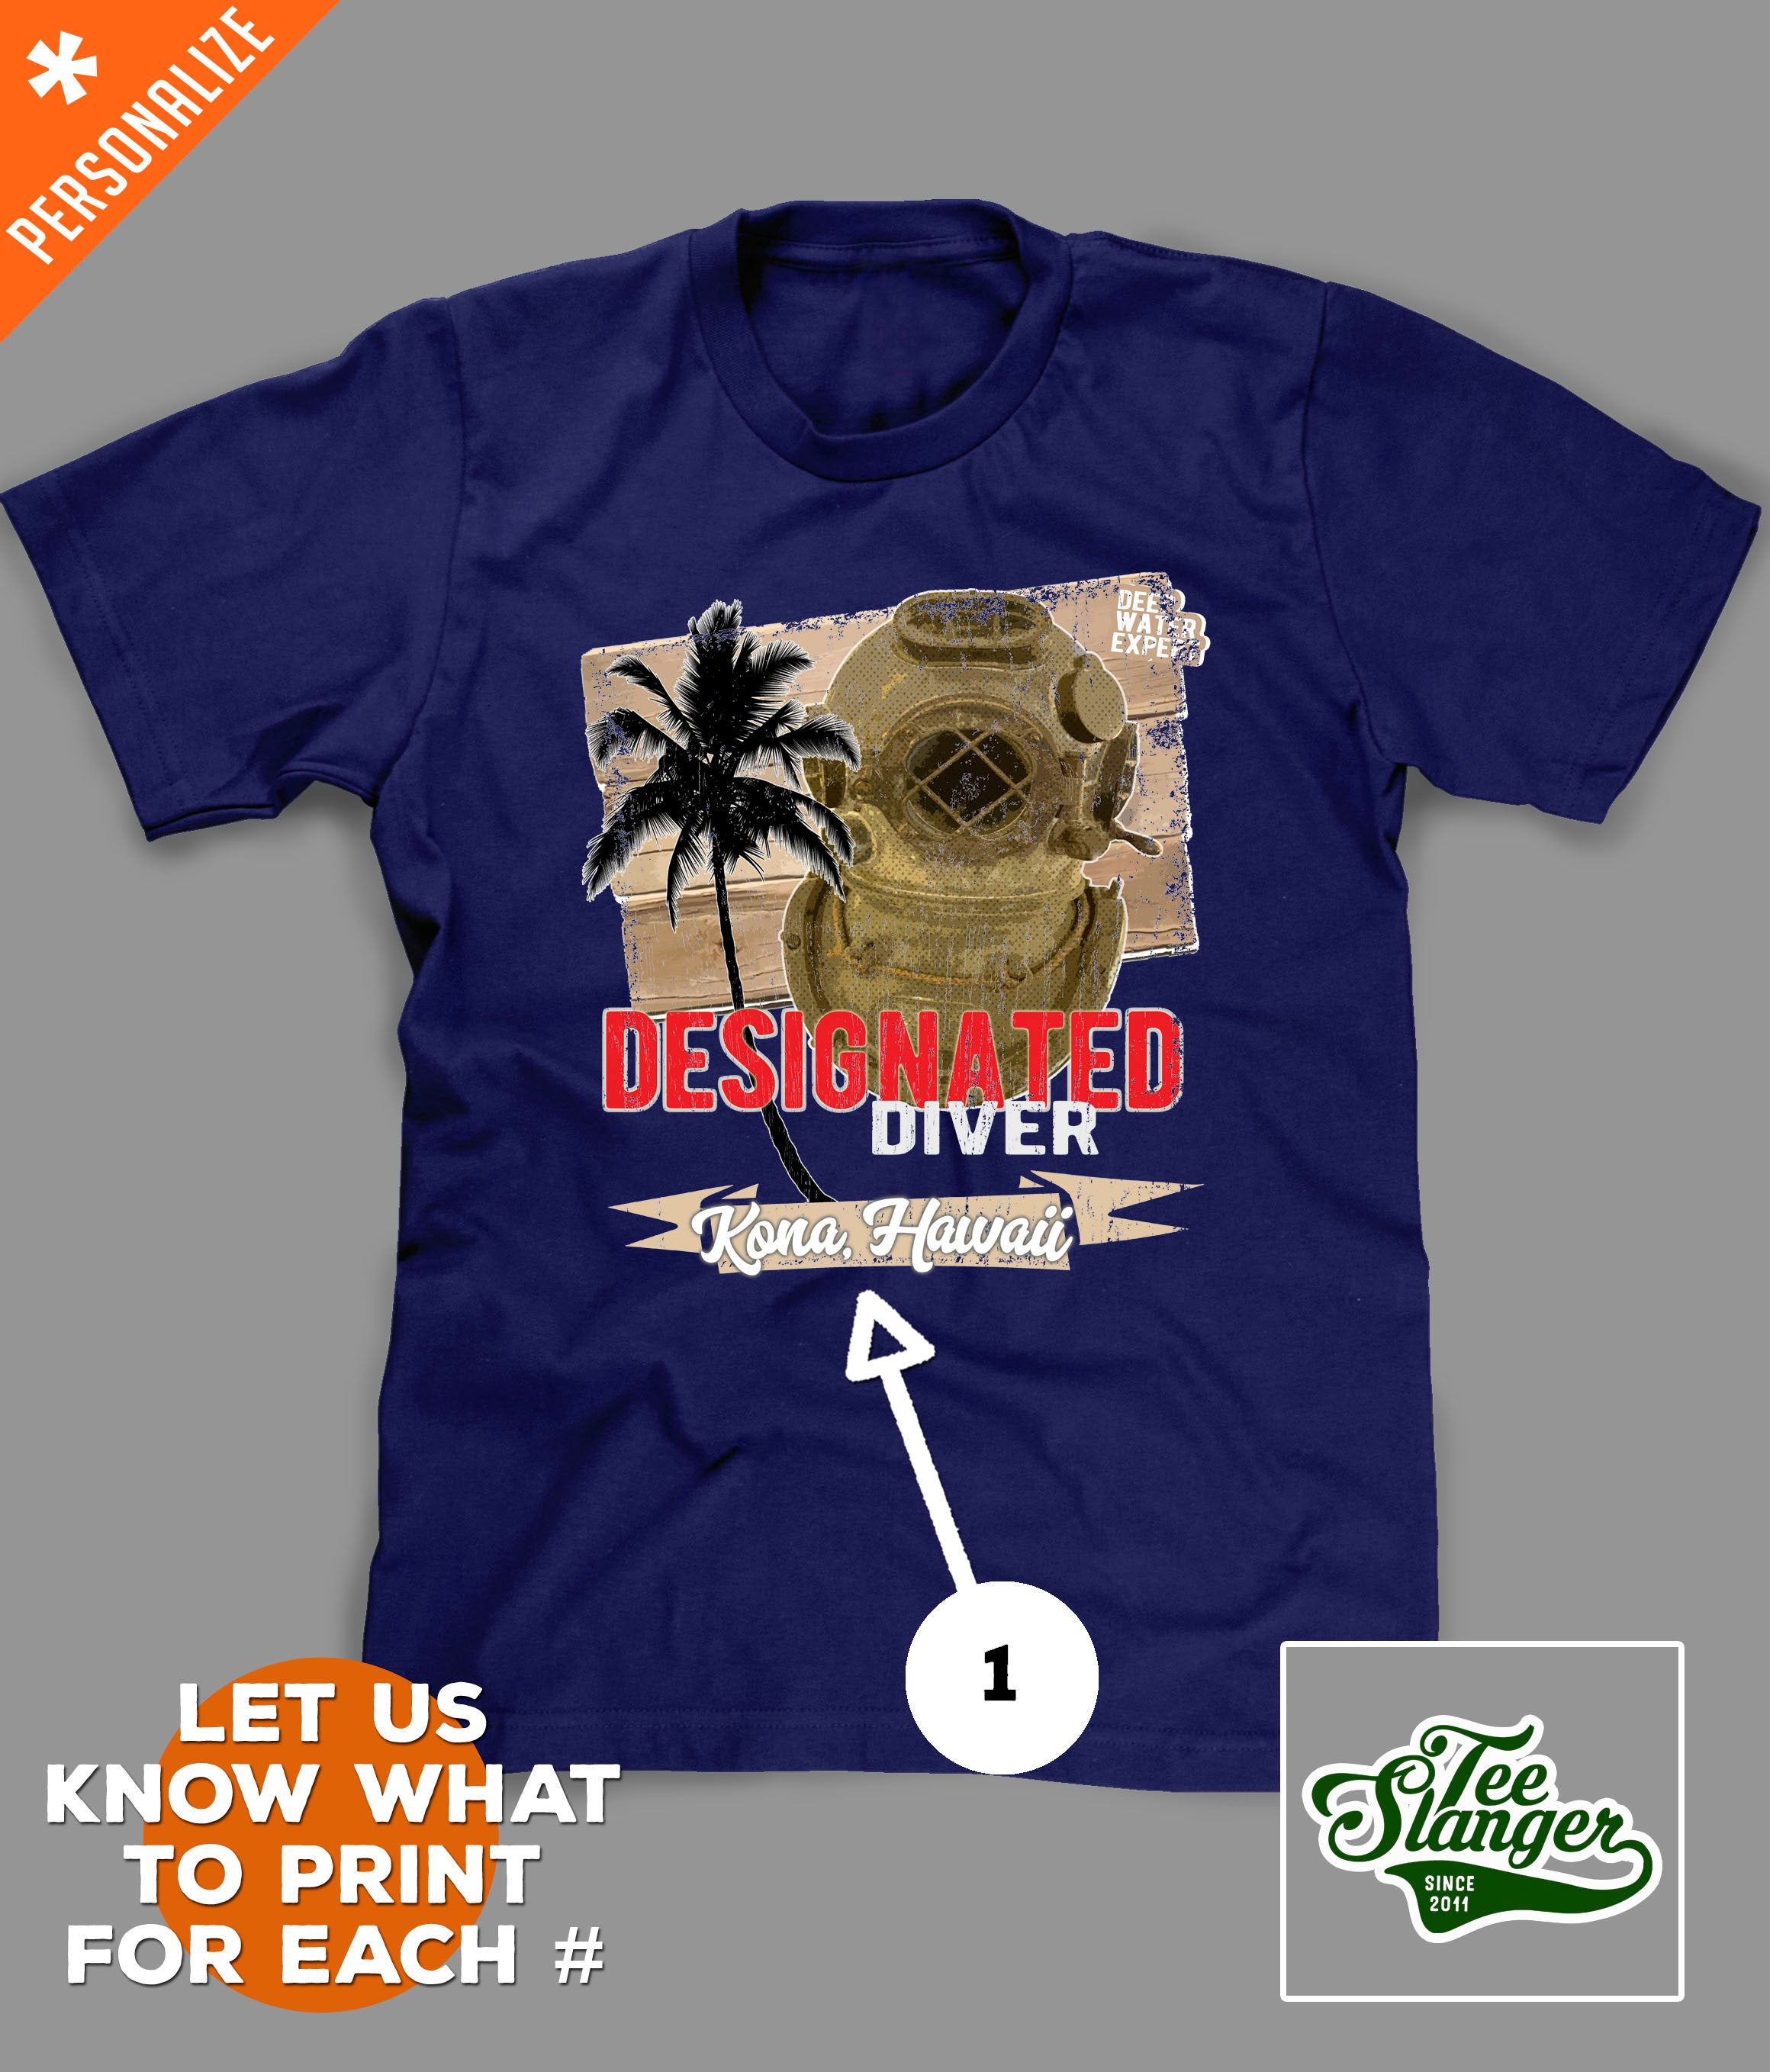 Designated Diver T-shirt Customization options